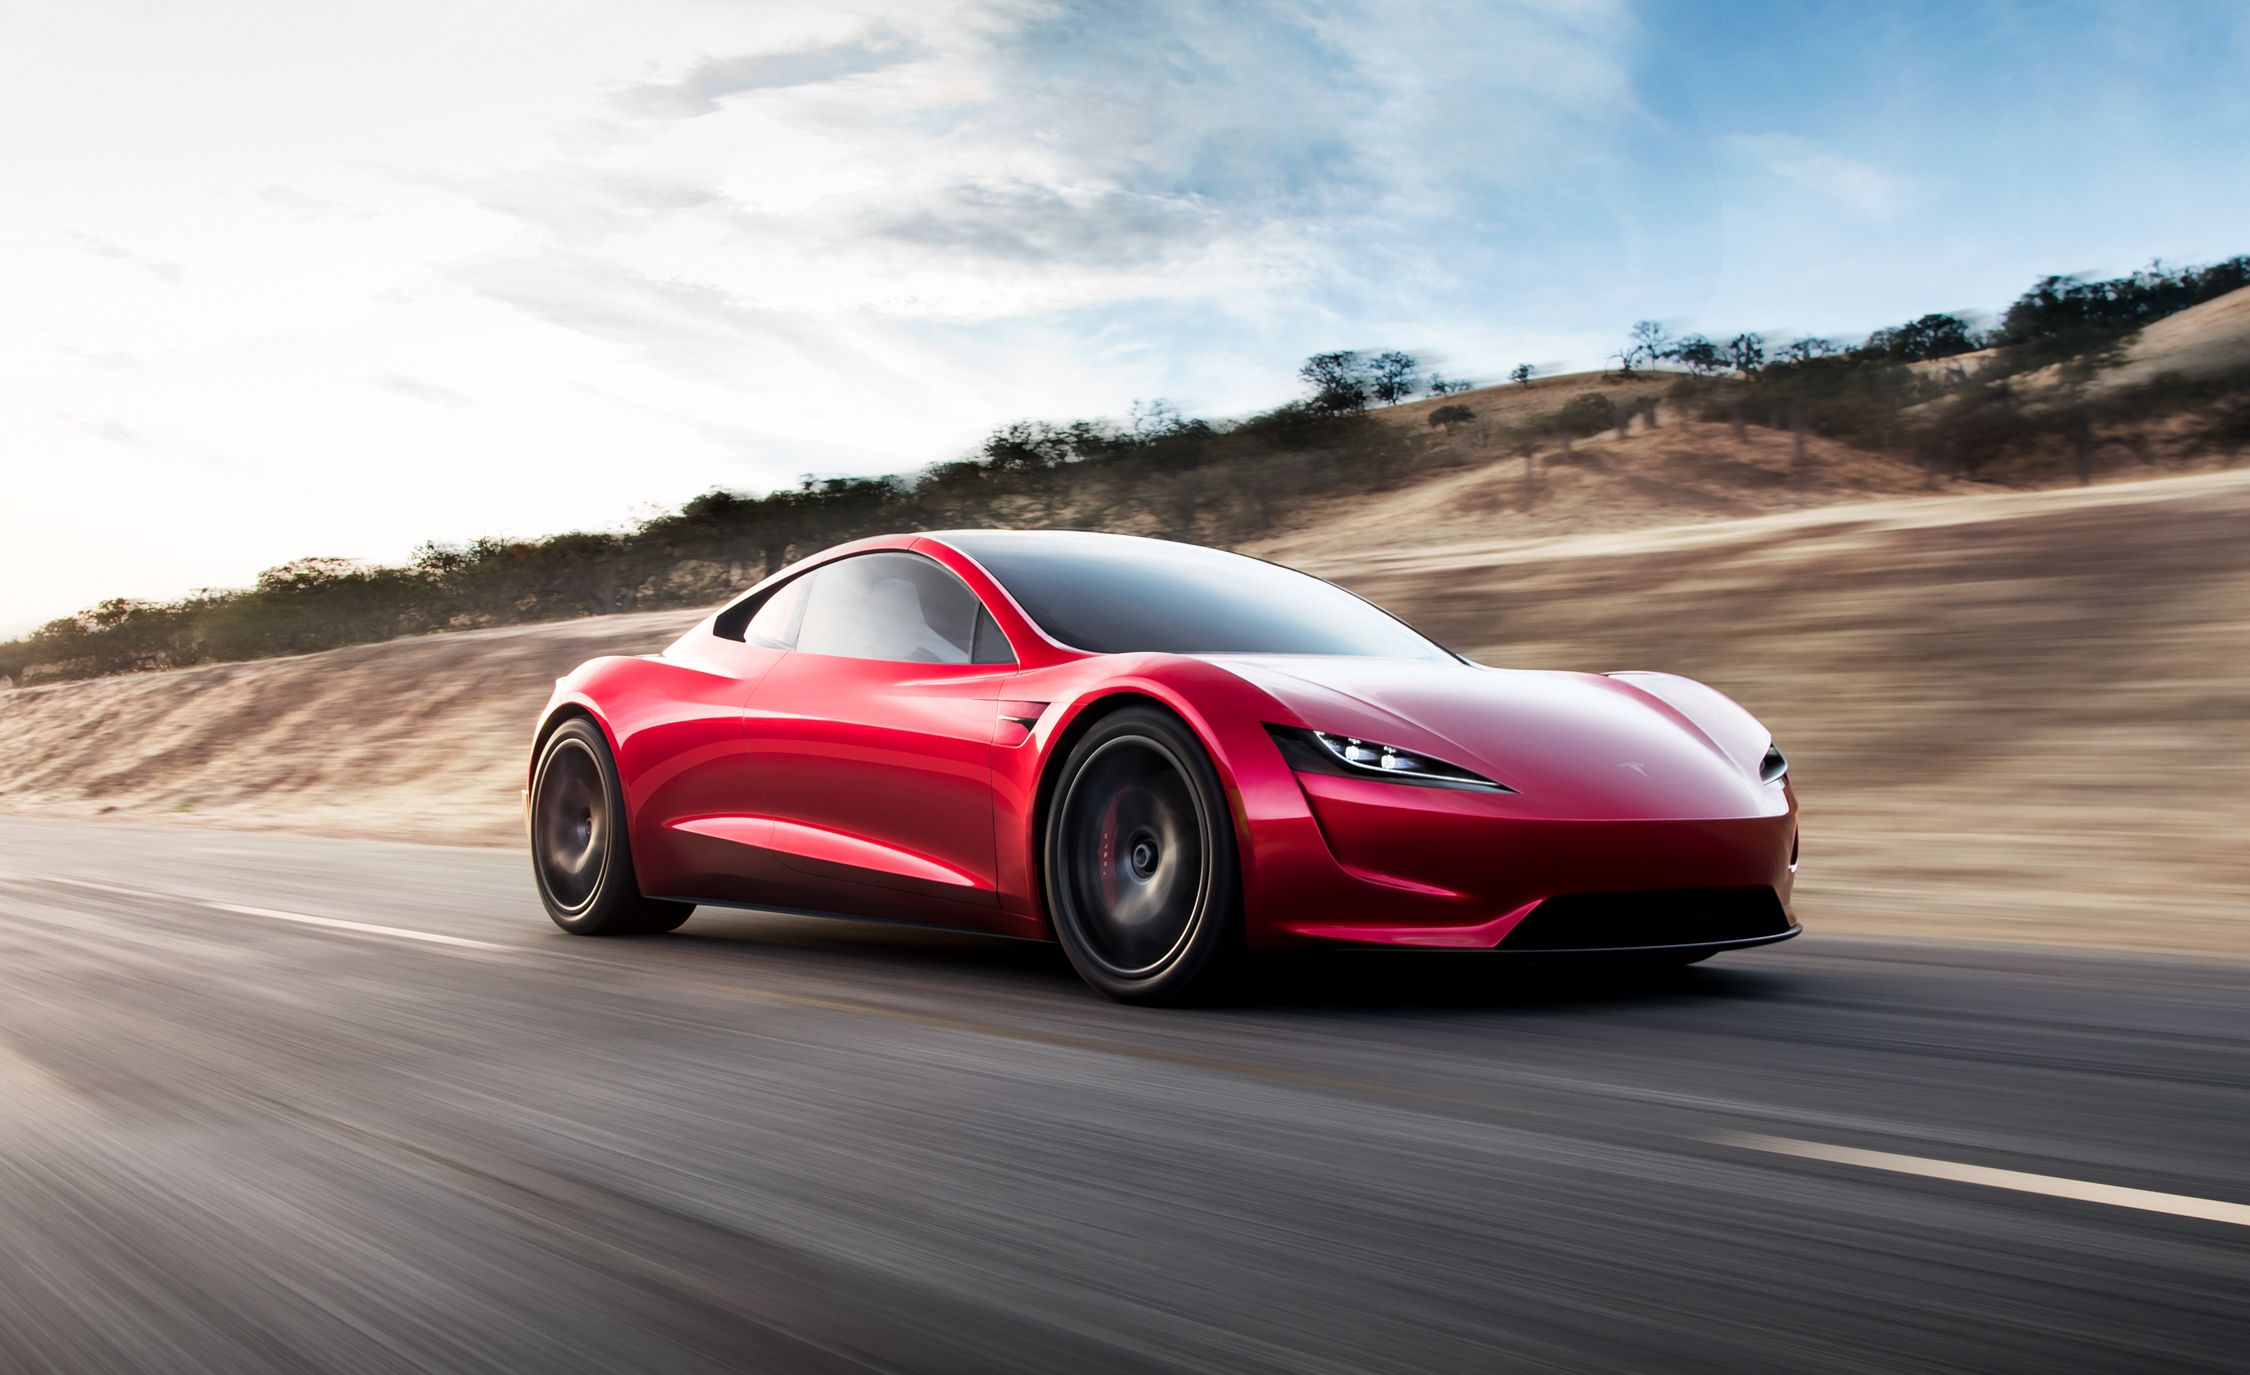 A red Tesla Roadster driving on the road